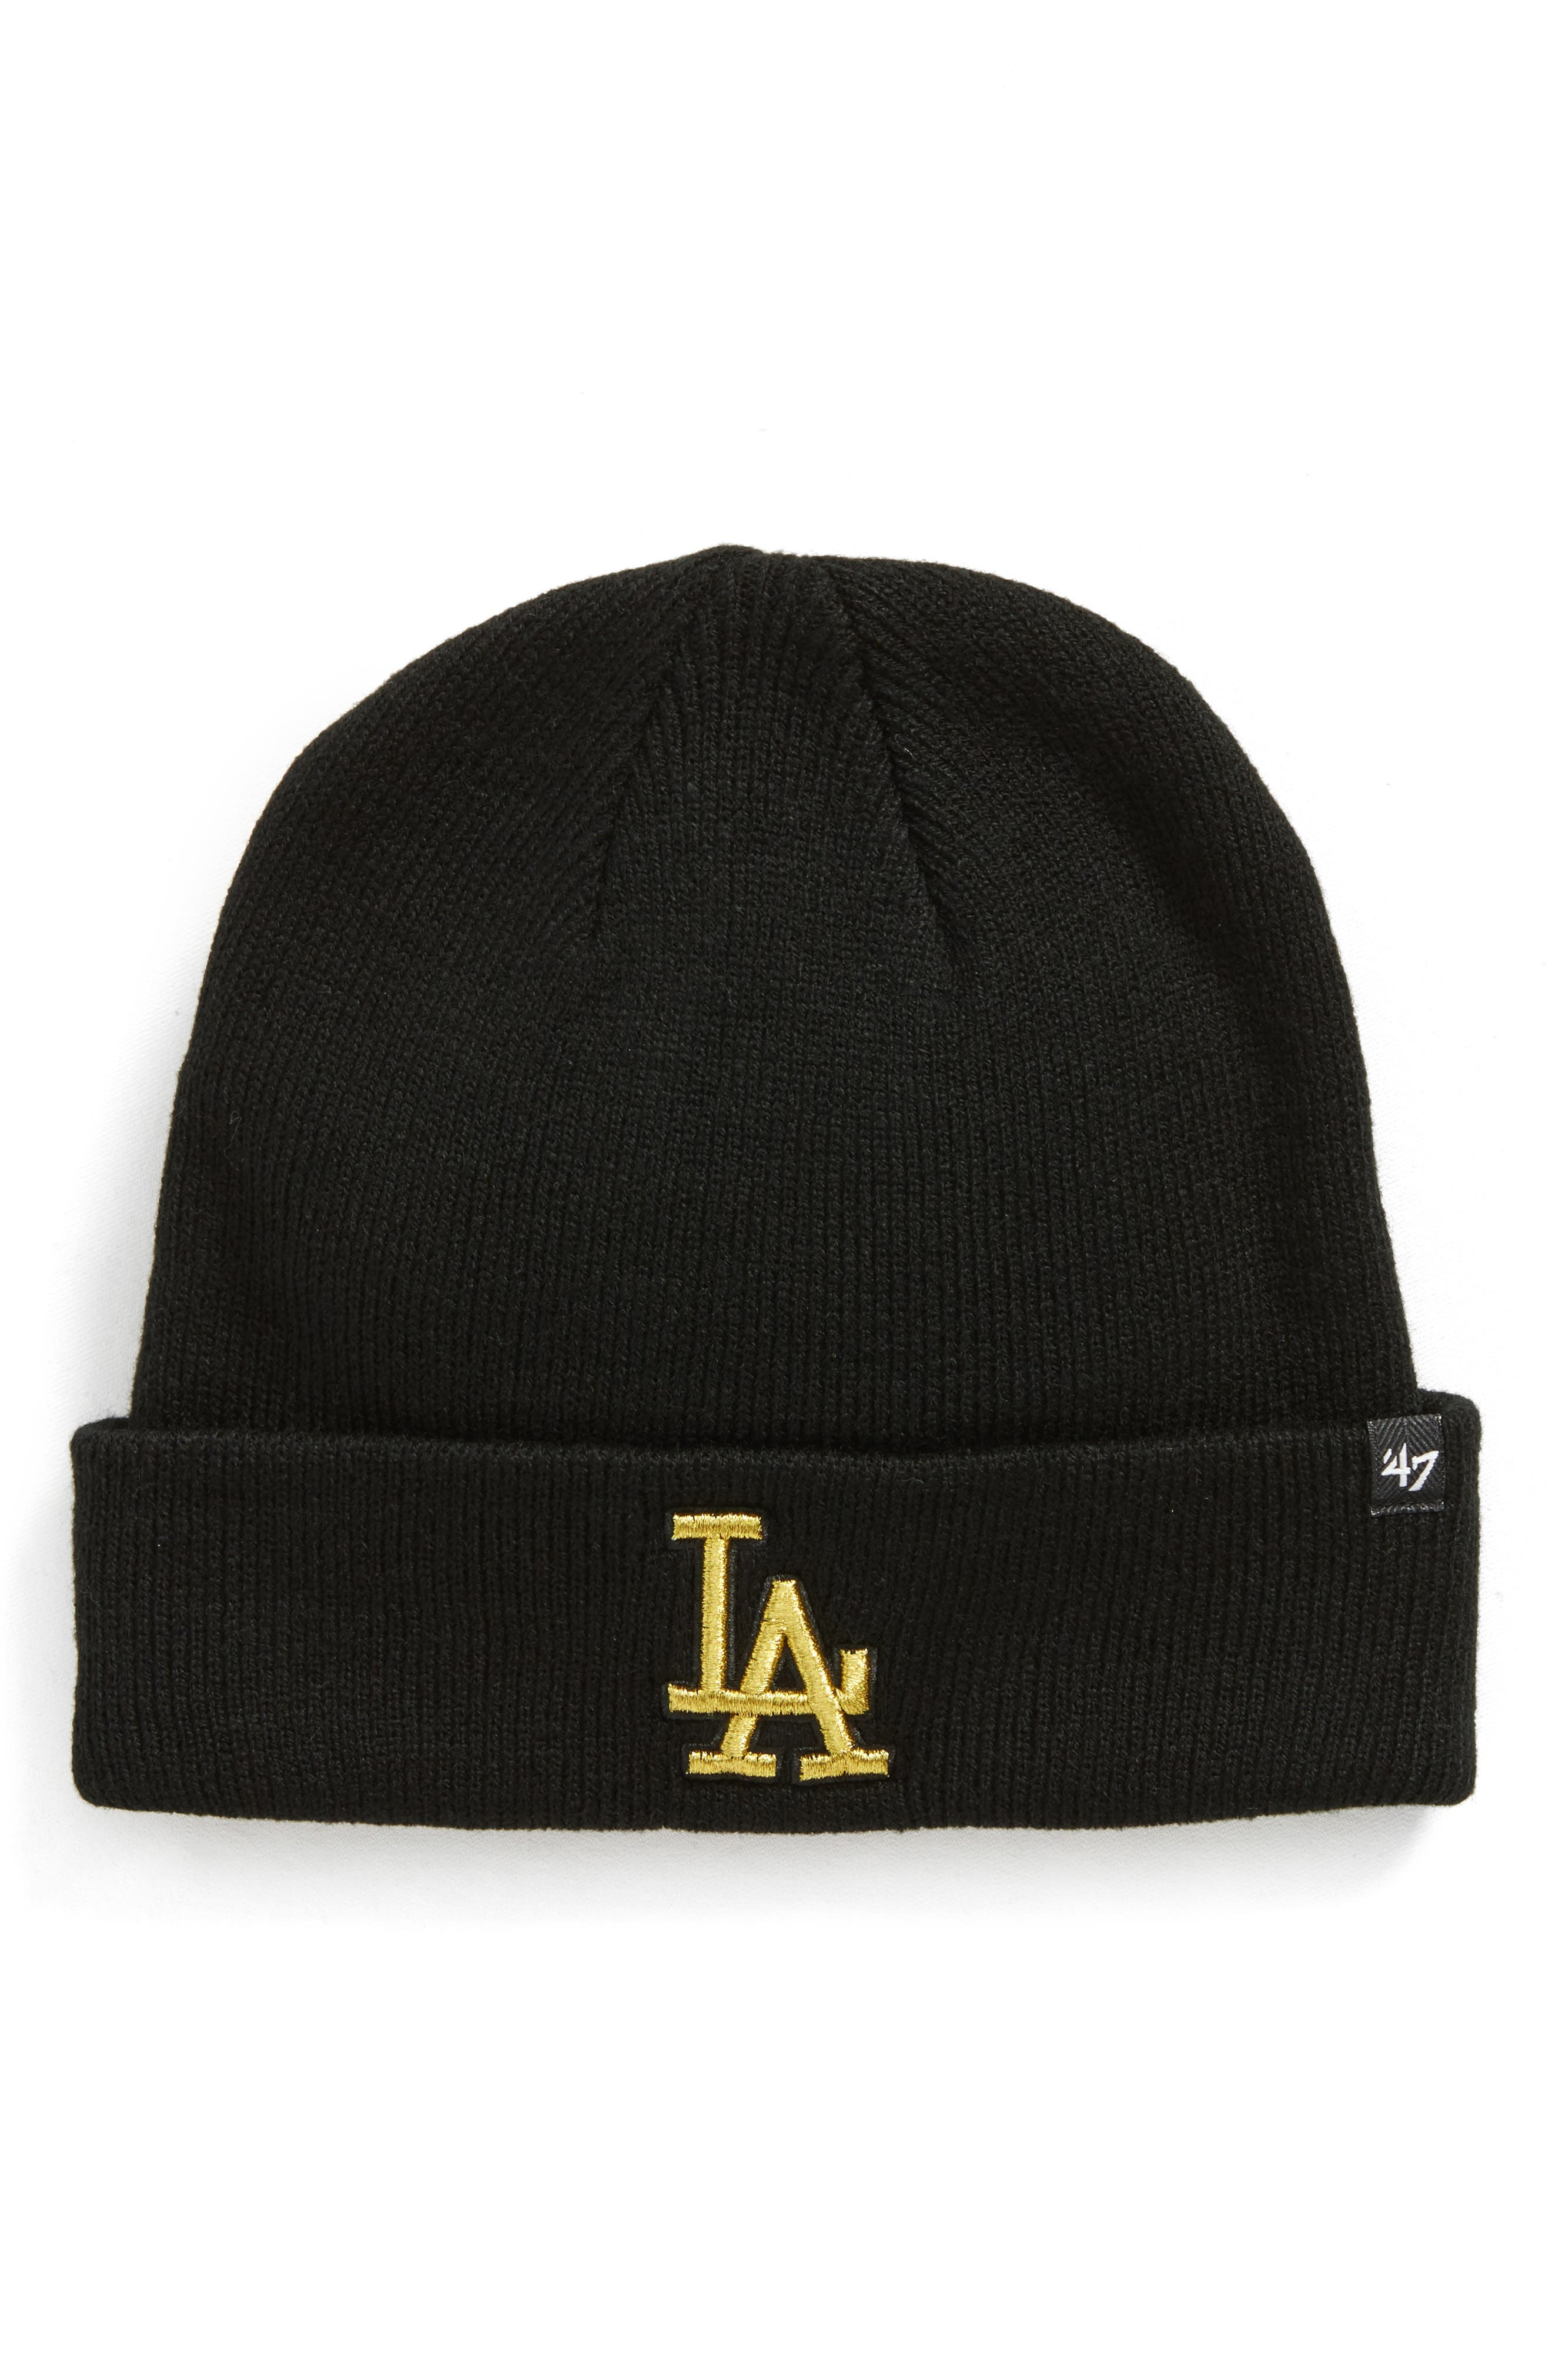 Los Angeles Dodgers Metallic Beanie,                         Main,                         color, 001